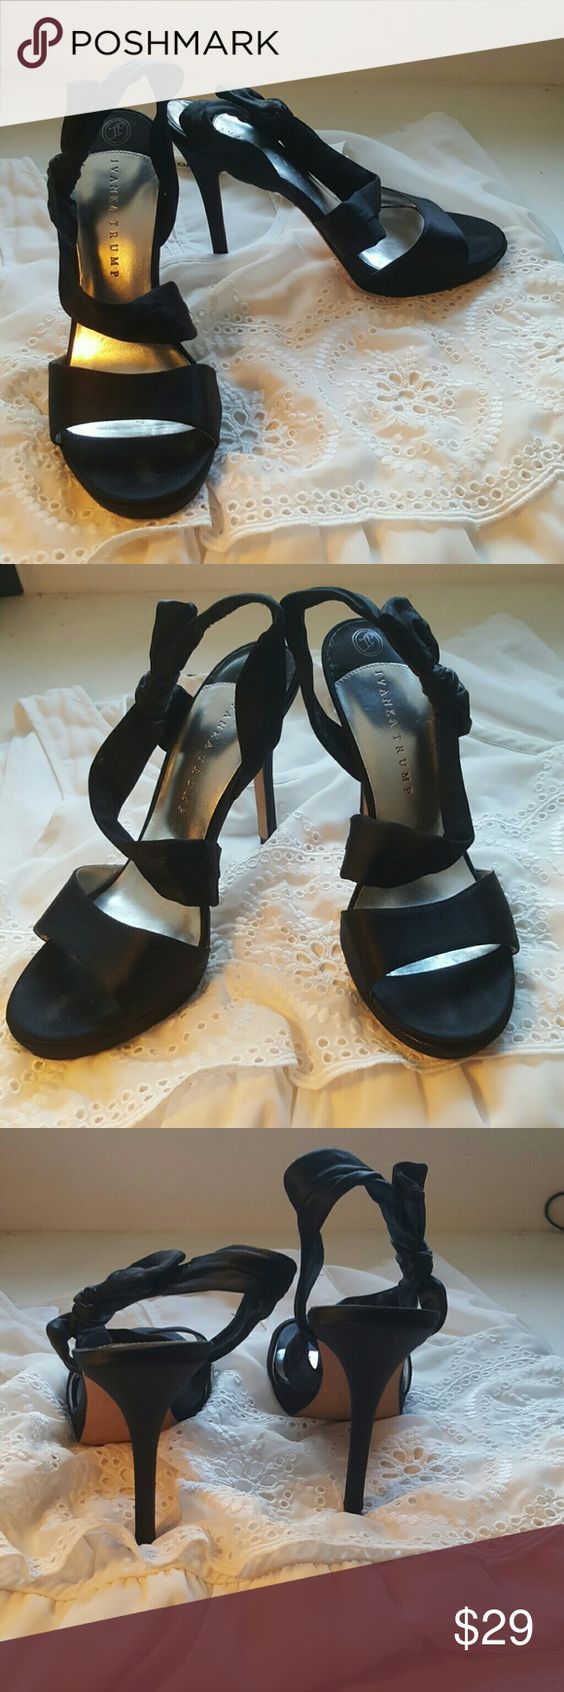 Ivanka Trump Ribbon Heels, sz 9 Purchased from Nordstroms May 2011. Worn twice and in storage since. Great used condition. Extremely easy to walk in for such a high heel. Ribbon straps keep a good hold on your foot. Ivanka Trump Shoes Heels